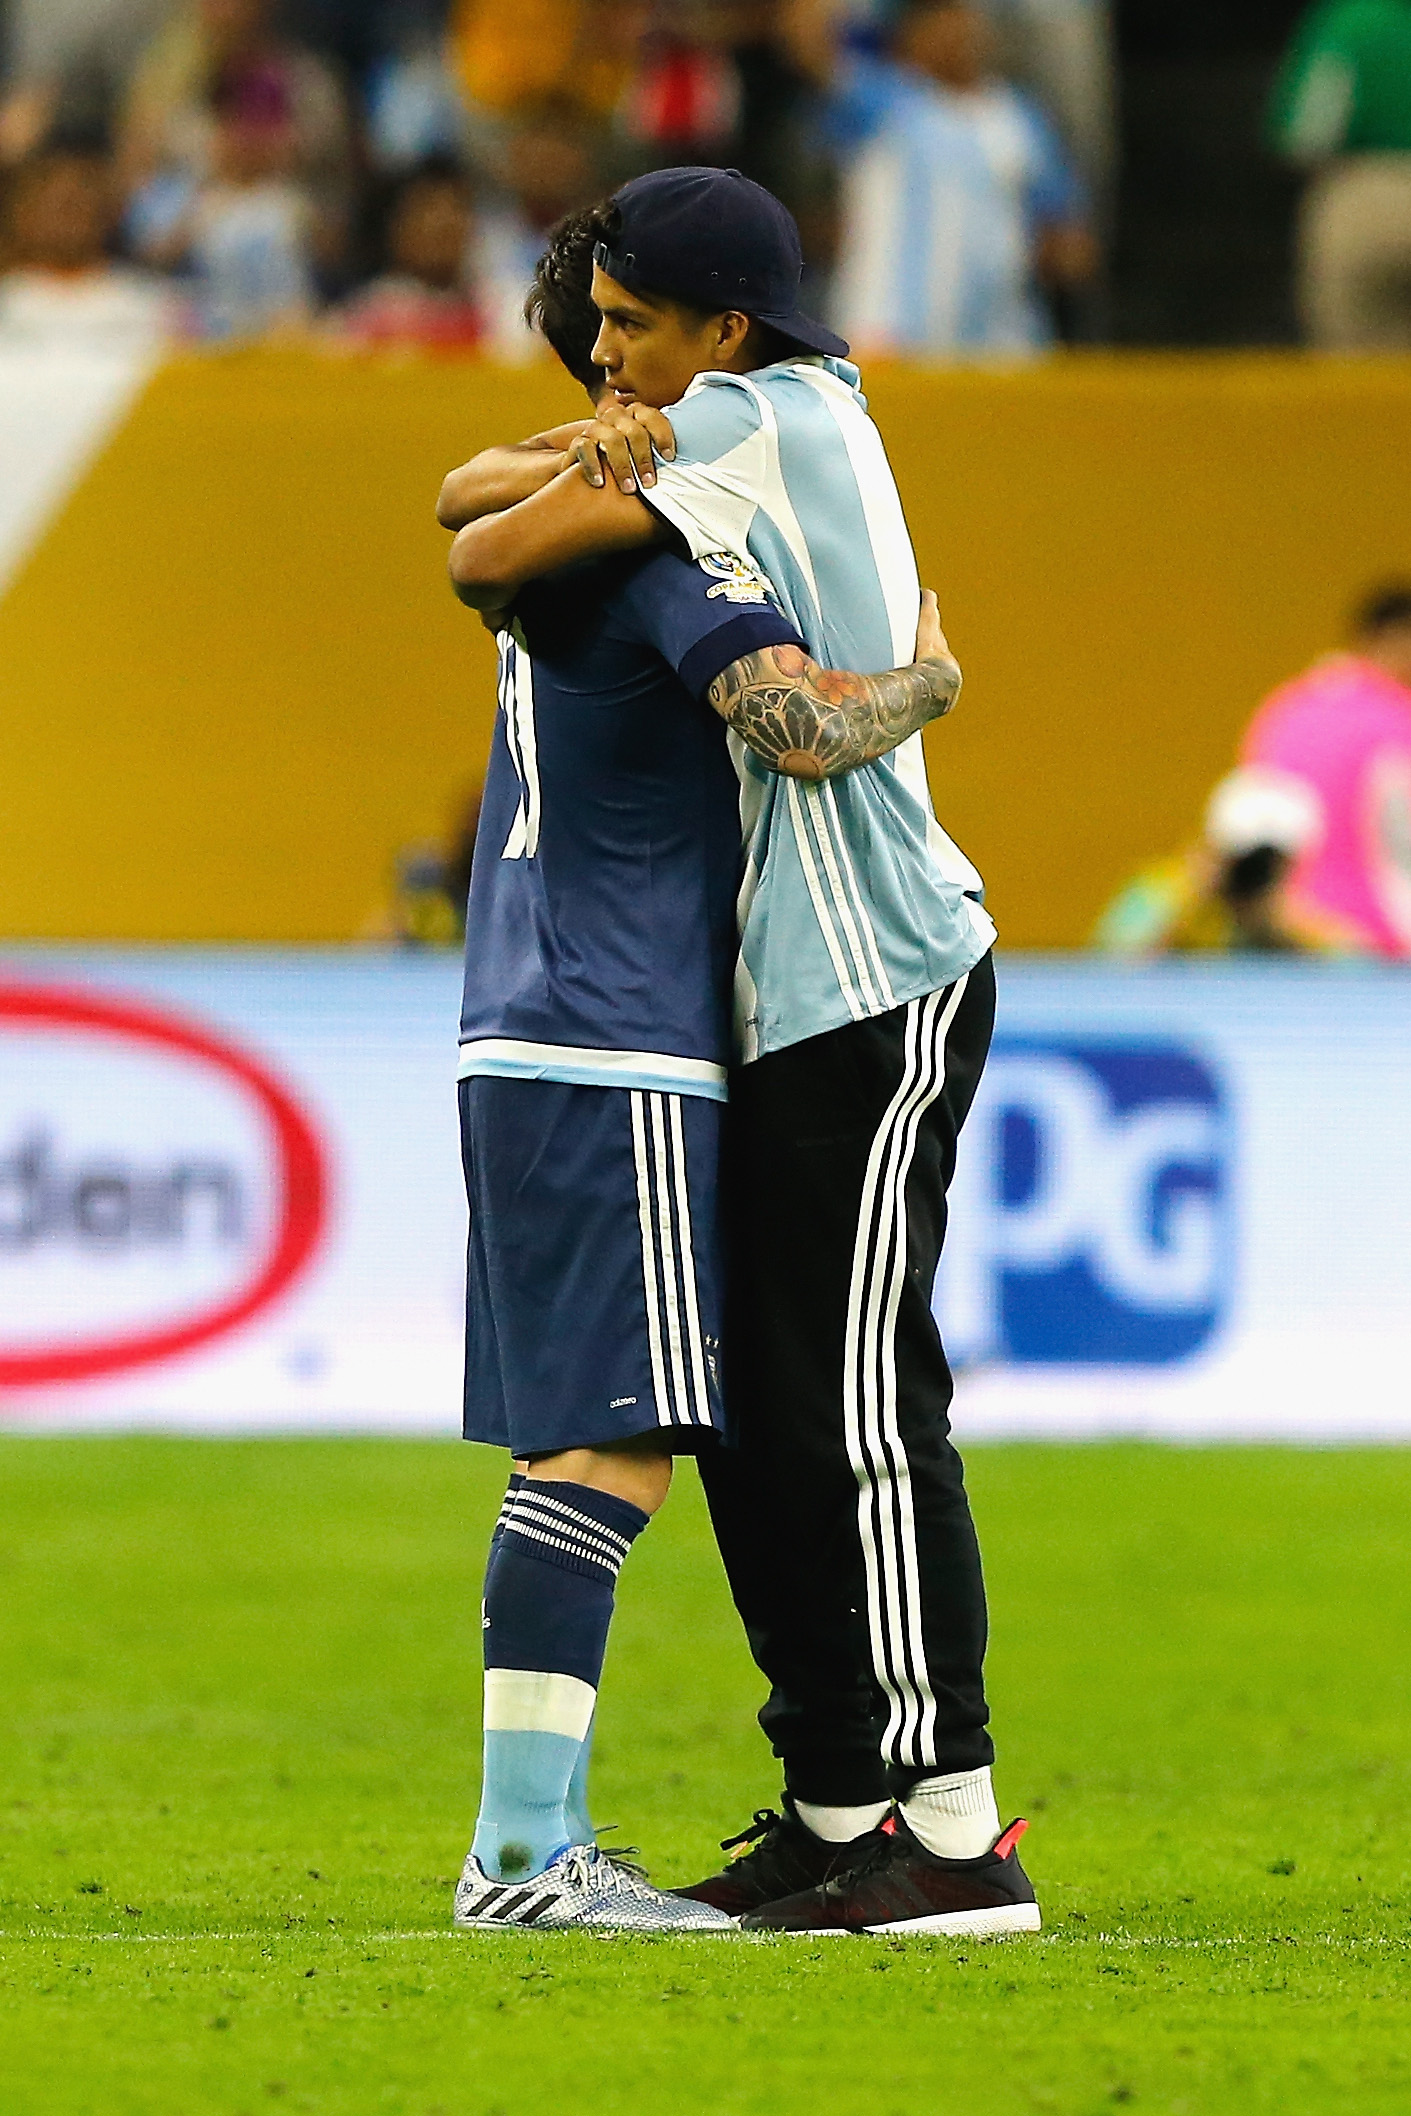 HOUSTON, TX - JUNE 21: Lionel Messi #10 of Argentina hugs a fan who ran onto the field prior to the start of the second half during a 2016 Copa America Centenario Semifinal match between Argentina and the United States at NRG Stadium on June 21, 2016 in Houston, Texas. Bob Levey/Getty Images/AFP